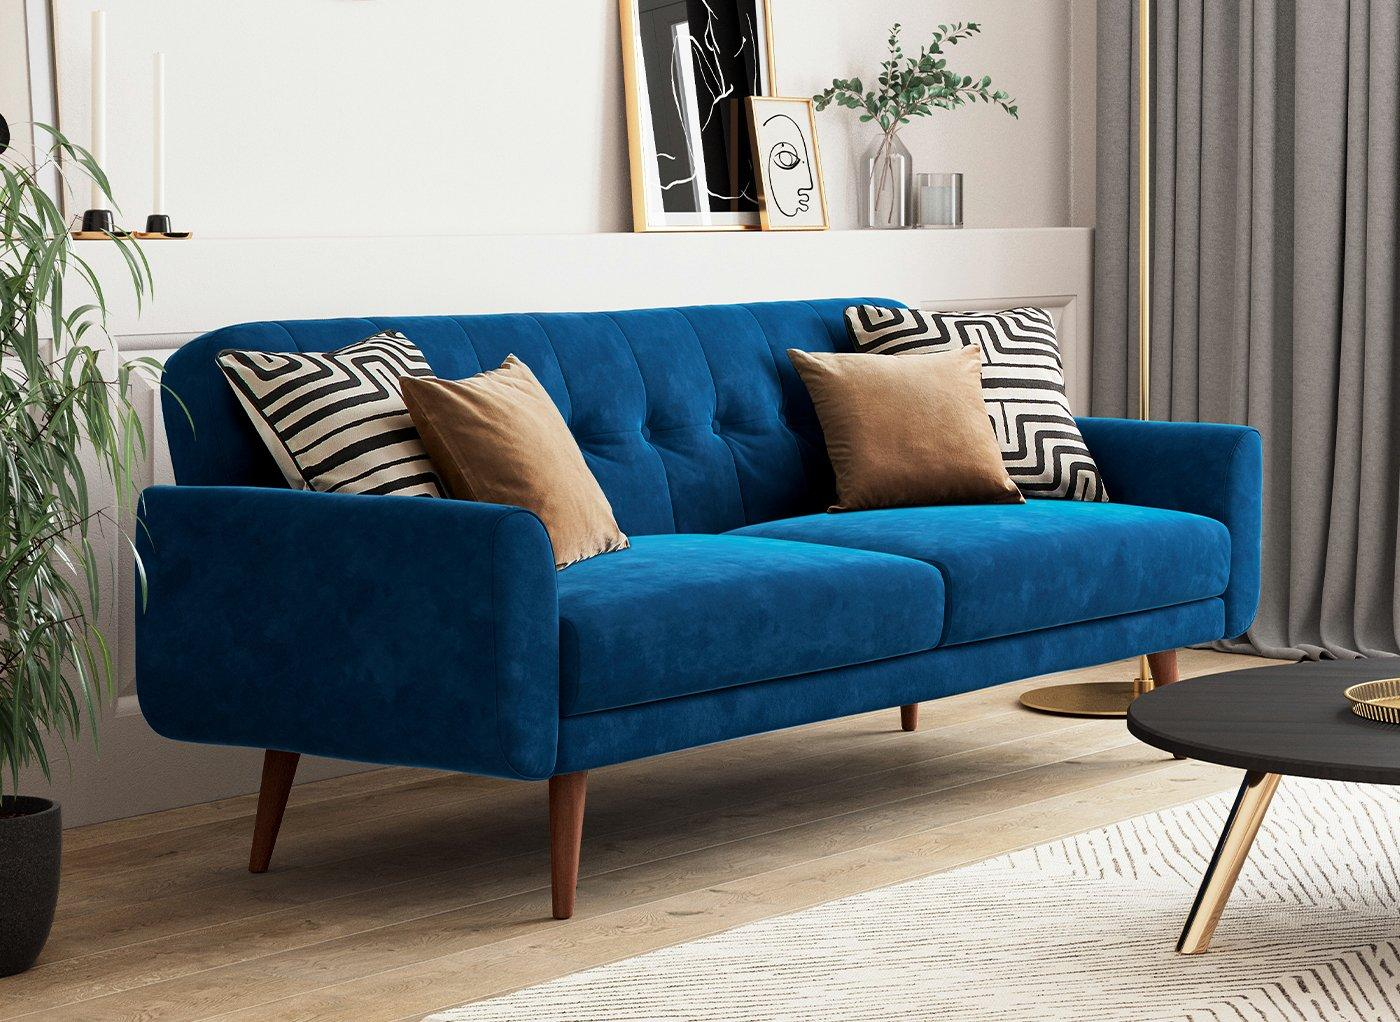 Gallway 3 Seater Clic-Clac Sofa Bed (£699)